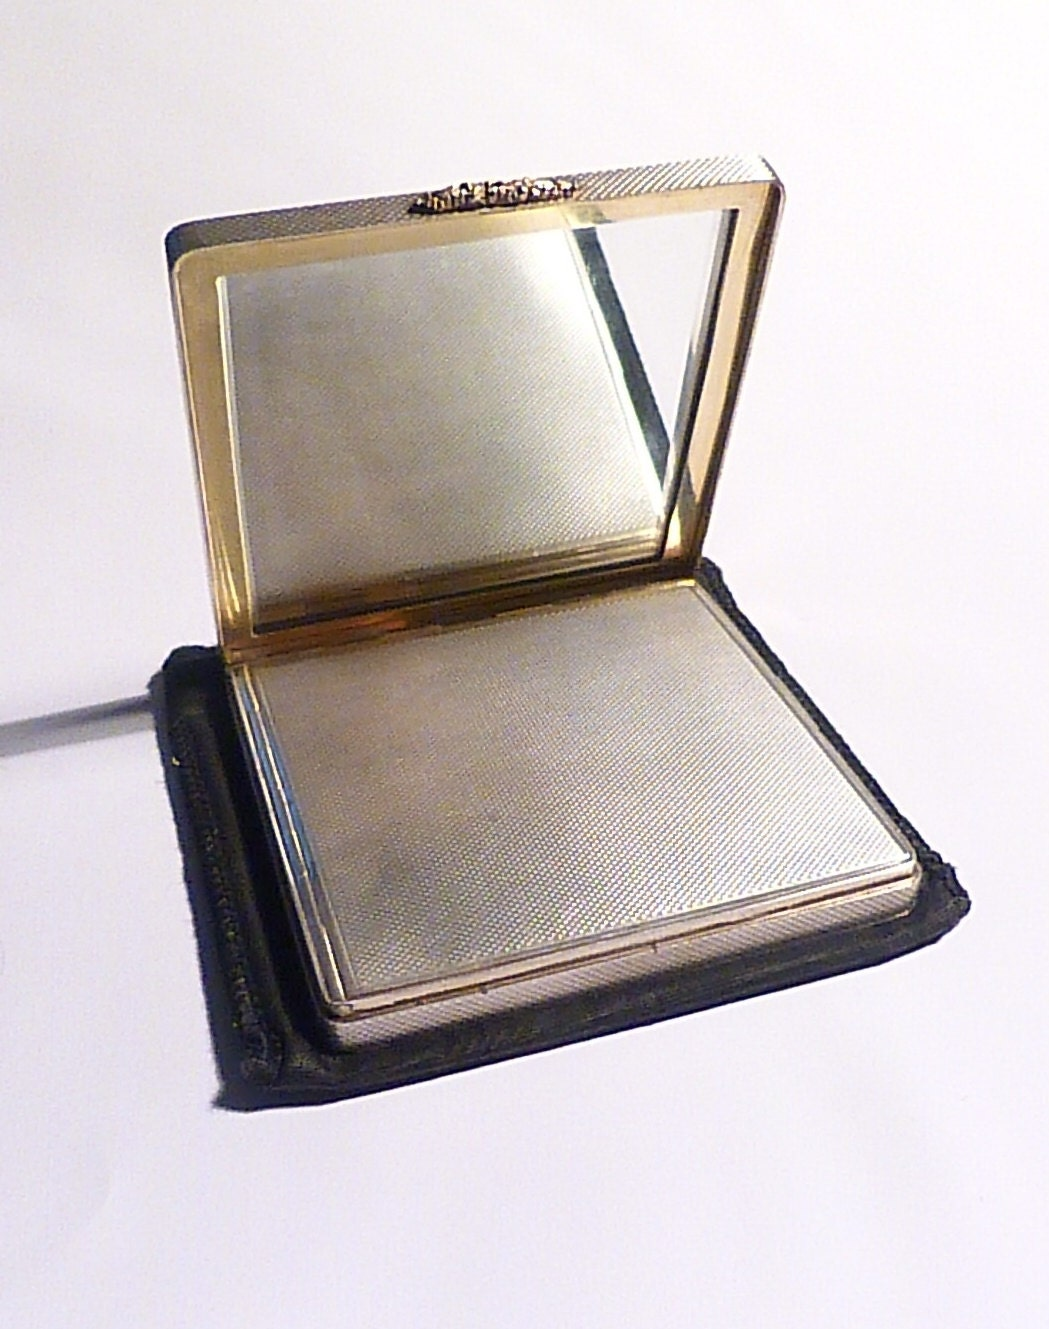 Antique silver wedding gifts 25th anniversary gifts for her sterling silver W H MANTON rose gold thumb catch powder compact